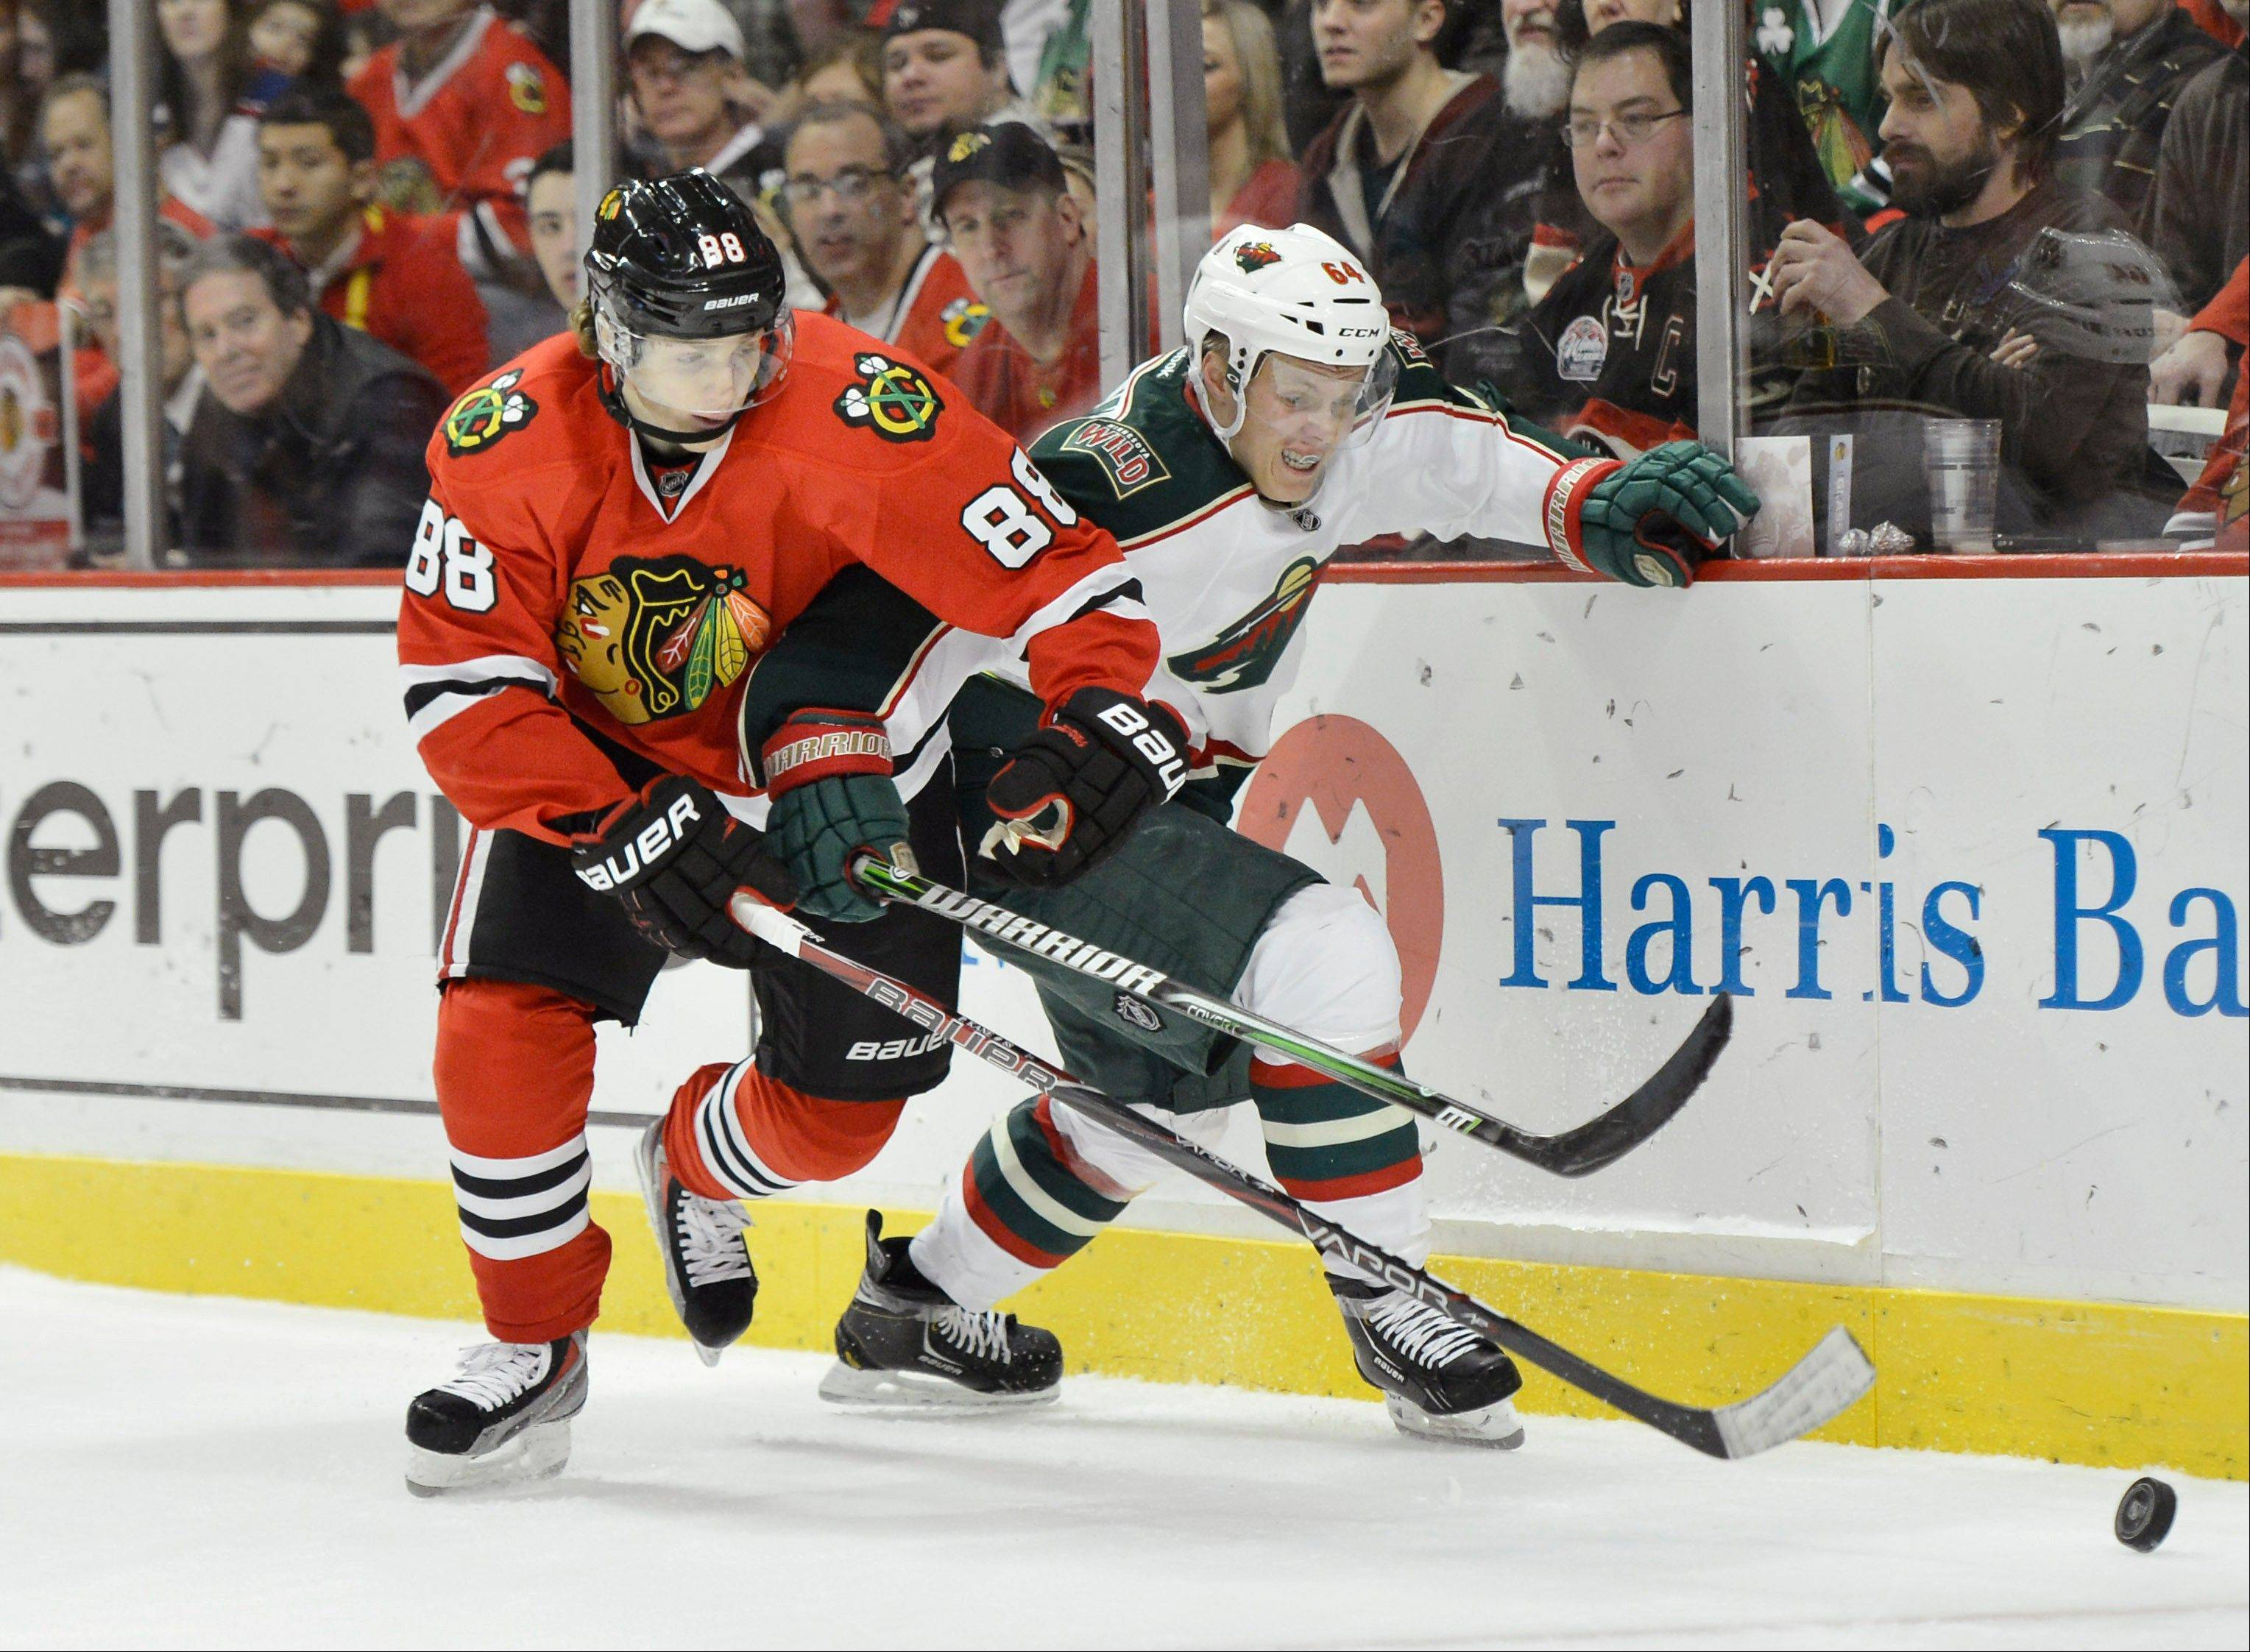 Chicago Blackhawks right wing Patrick Kane, left, and Minnesota Wild center Mikael Granlund of Finland go for the puck during the second period.